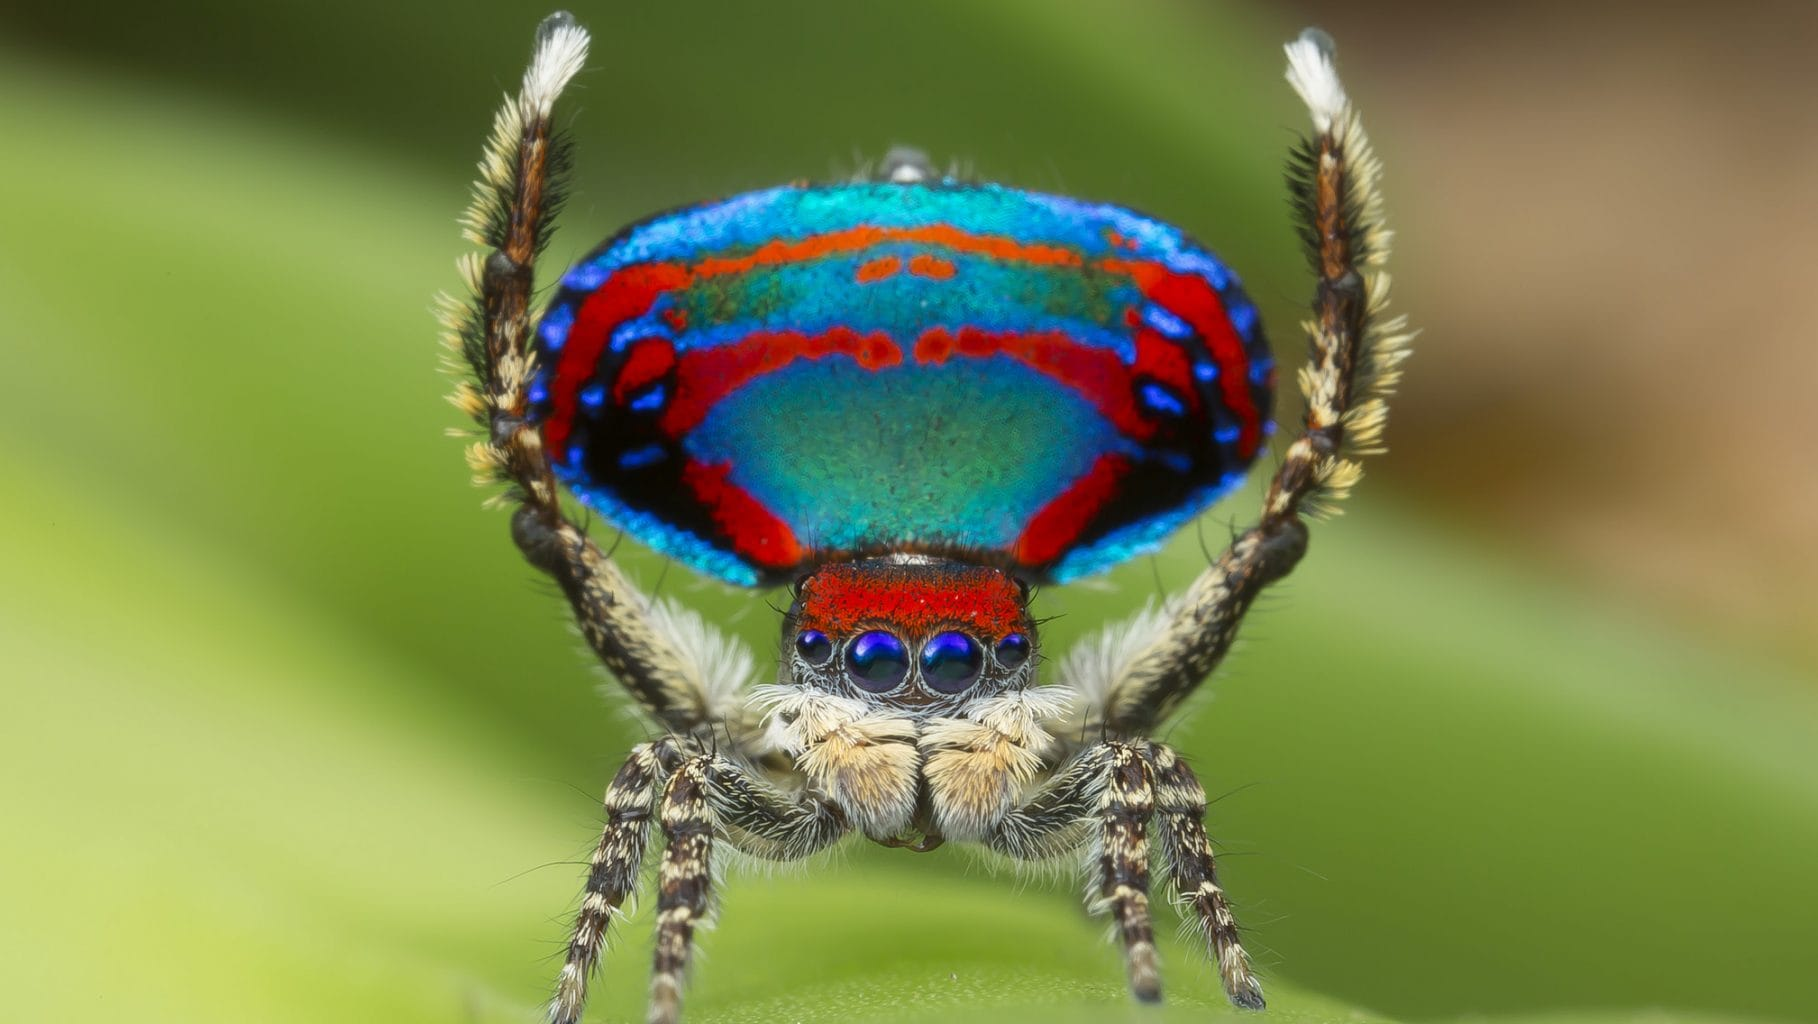 Image: Male Peacock Spider on a leaf with his arms up!